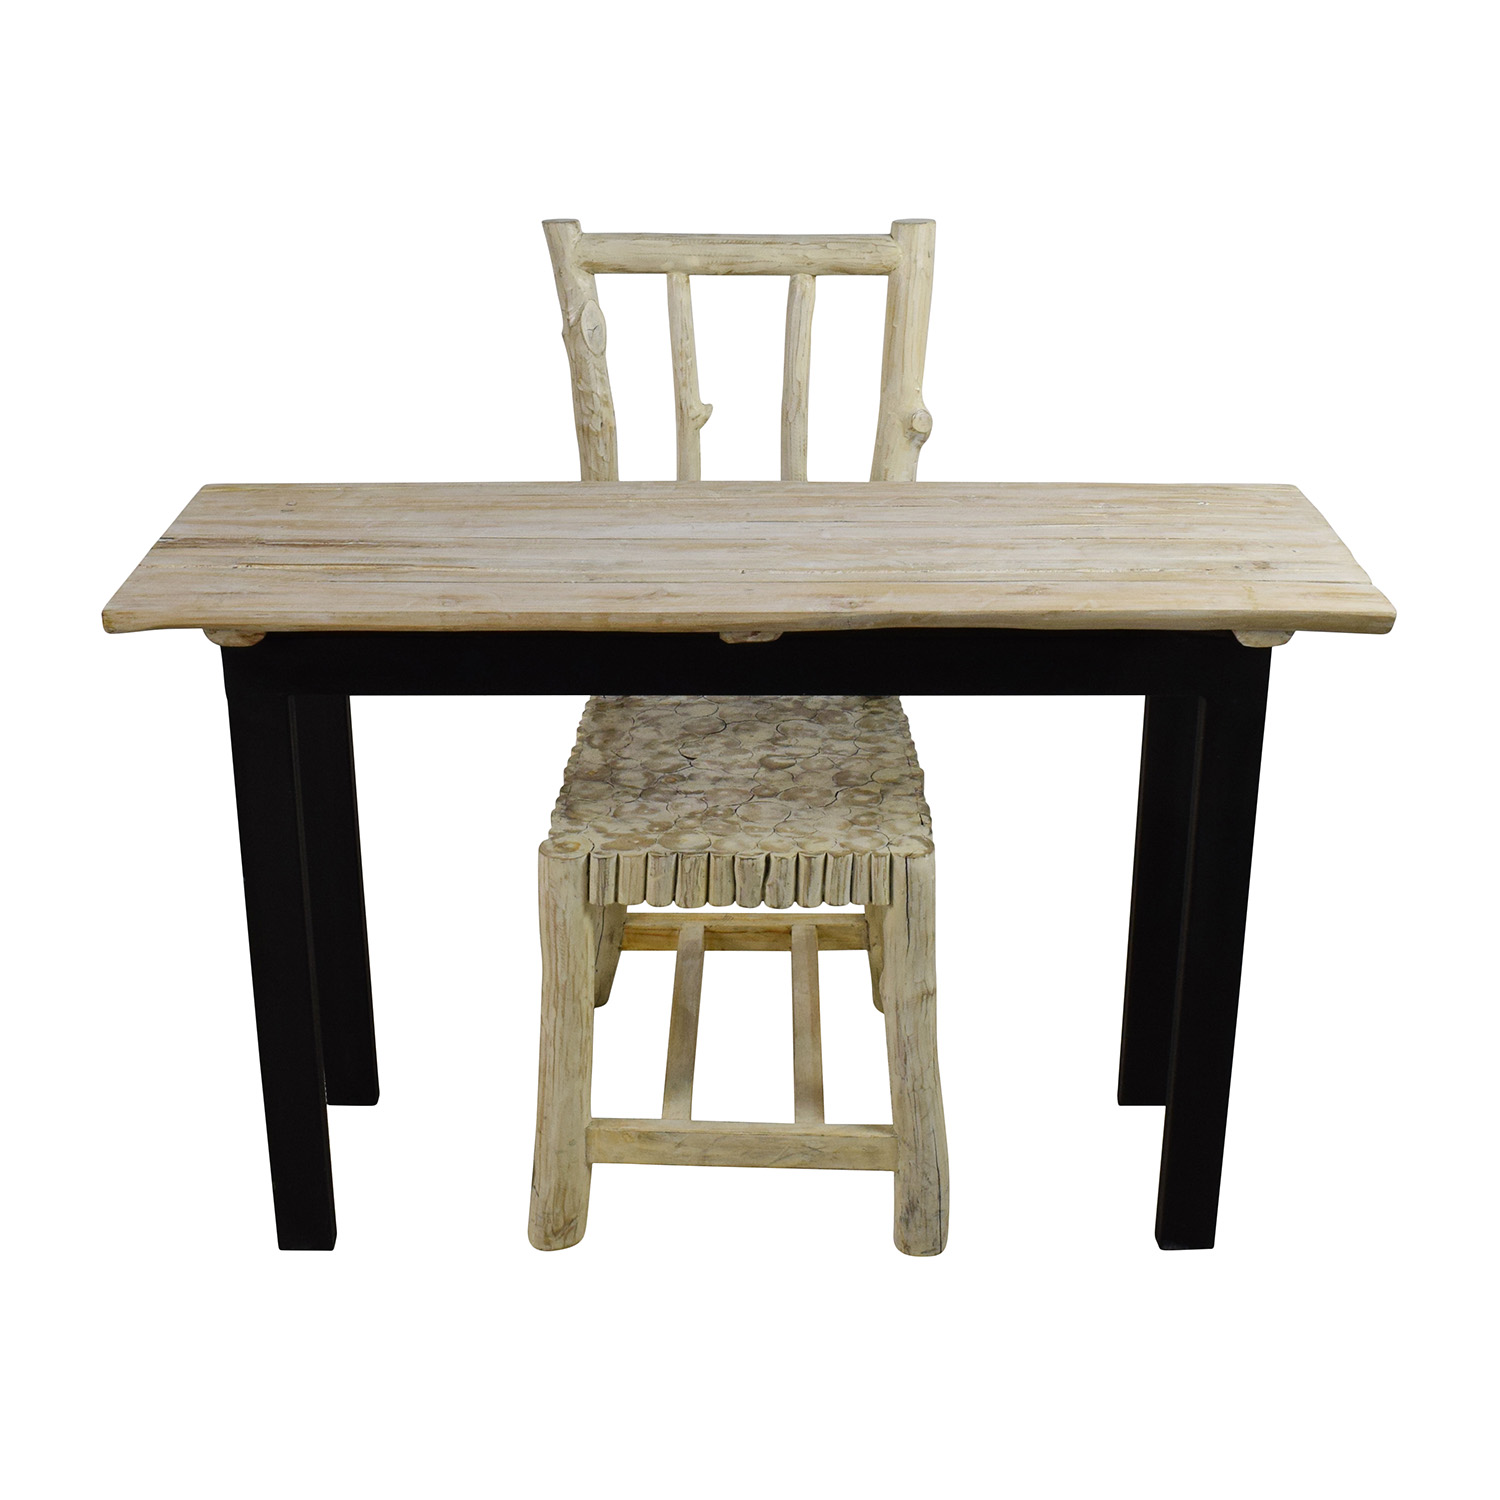 90% OFF Nadeau Nadeau Handcrafted Rustic Table and Chair Tables